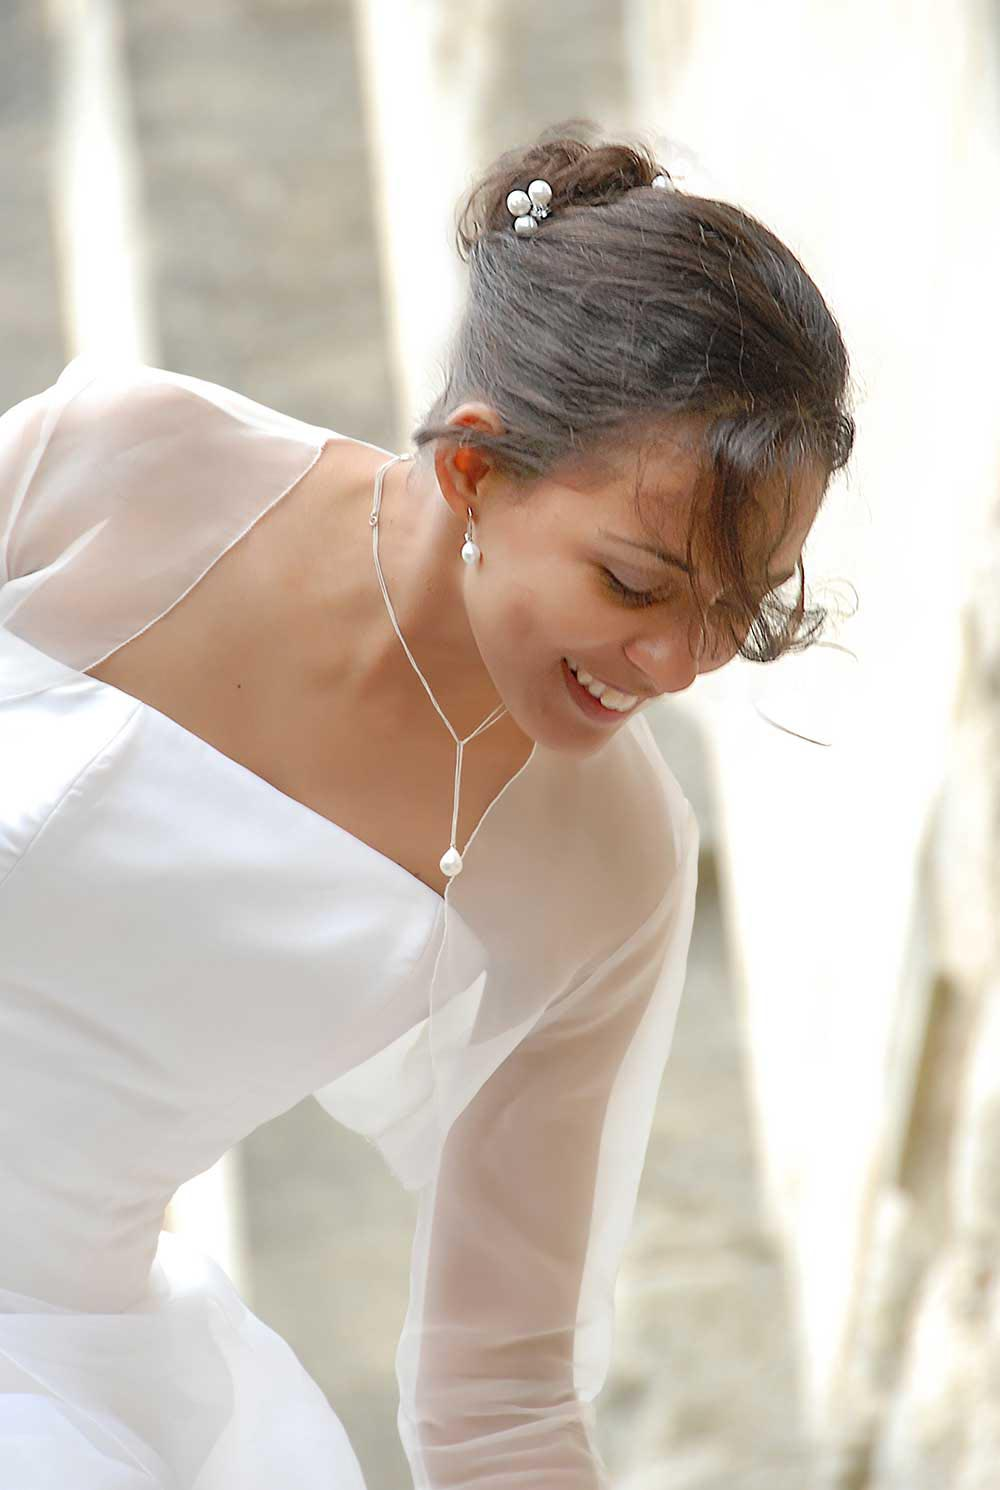 Bride in wedding dress with pearl necklace